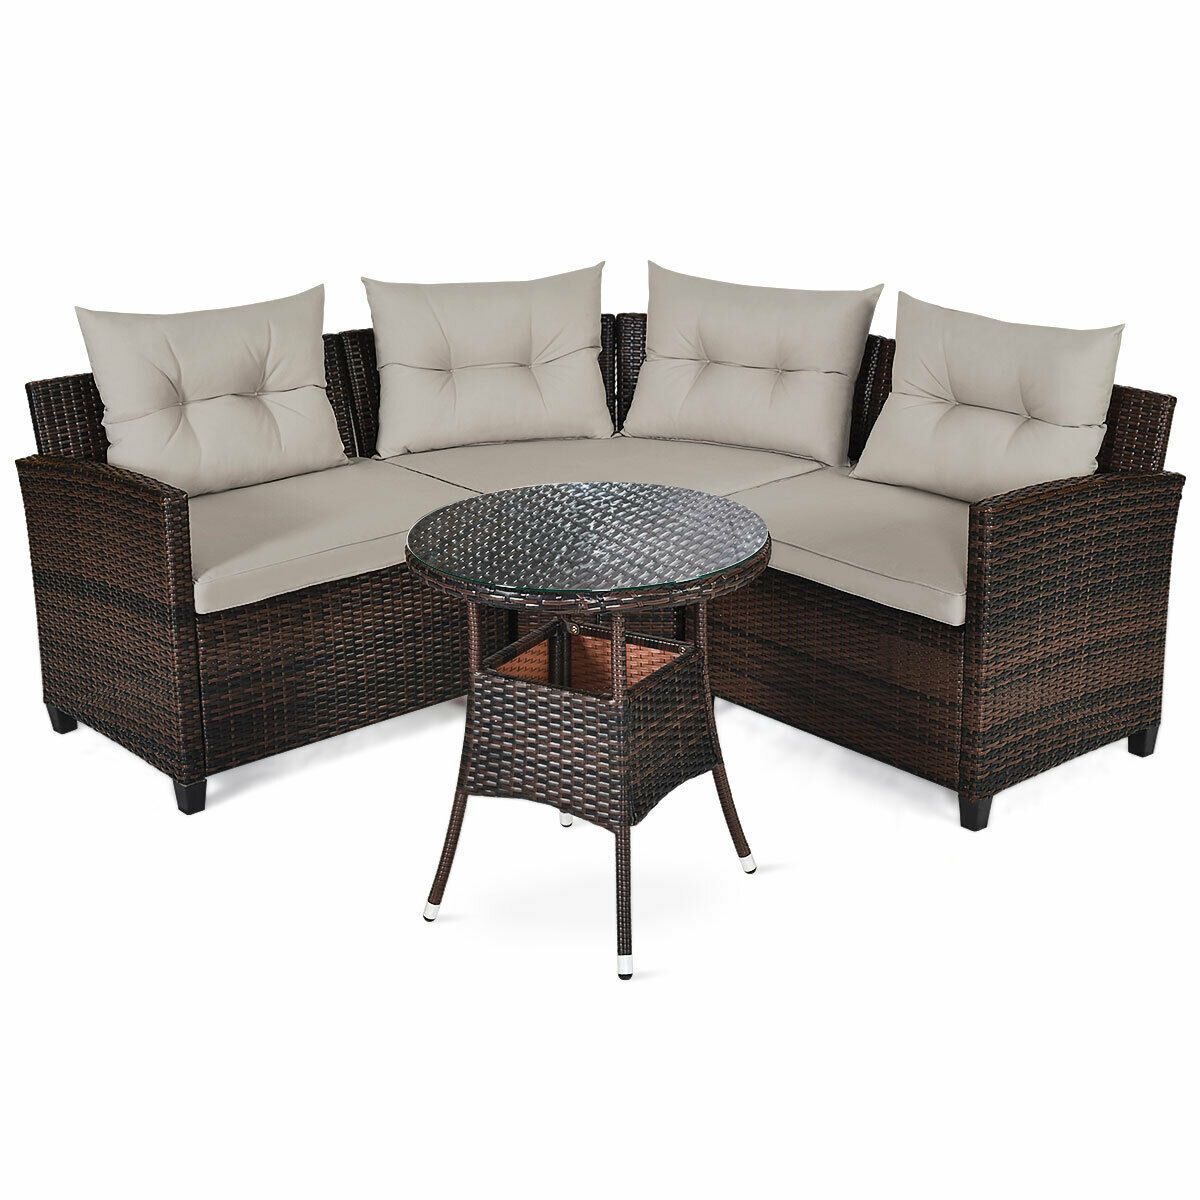 4 Pcs Furniture Patio Set Outdoor Wicker Sofa Set Outdoor